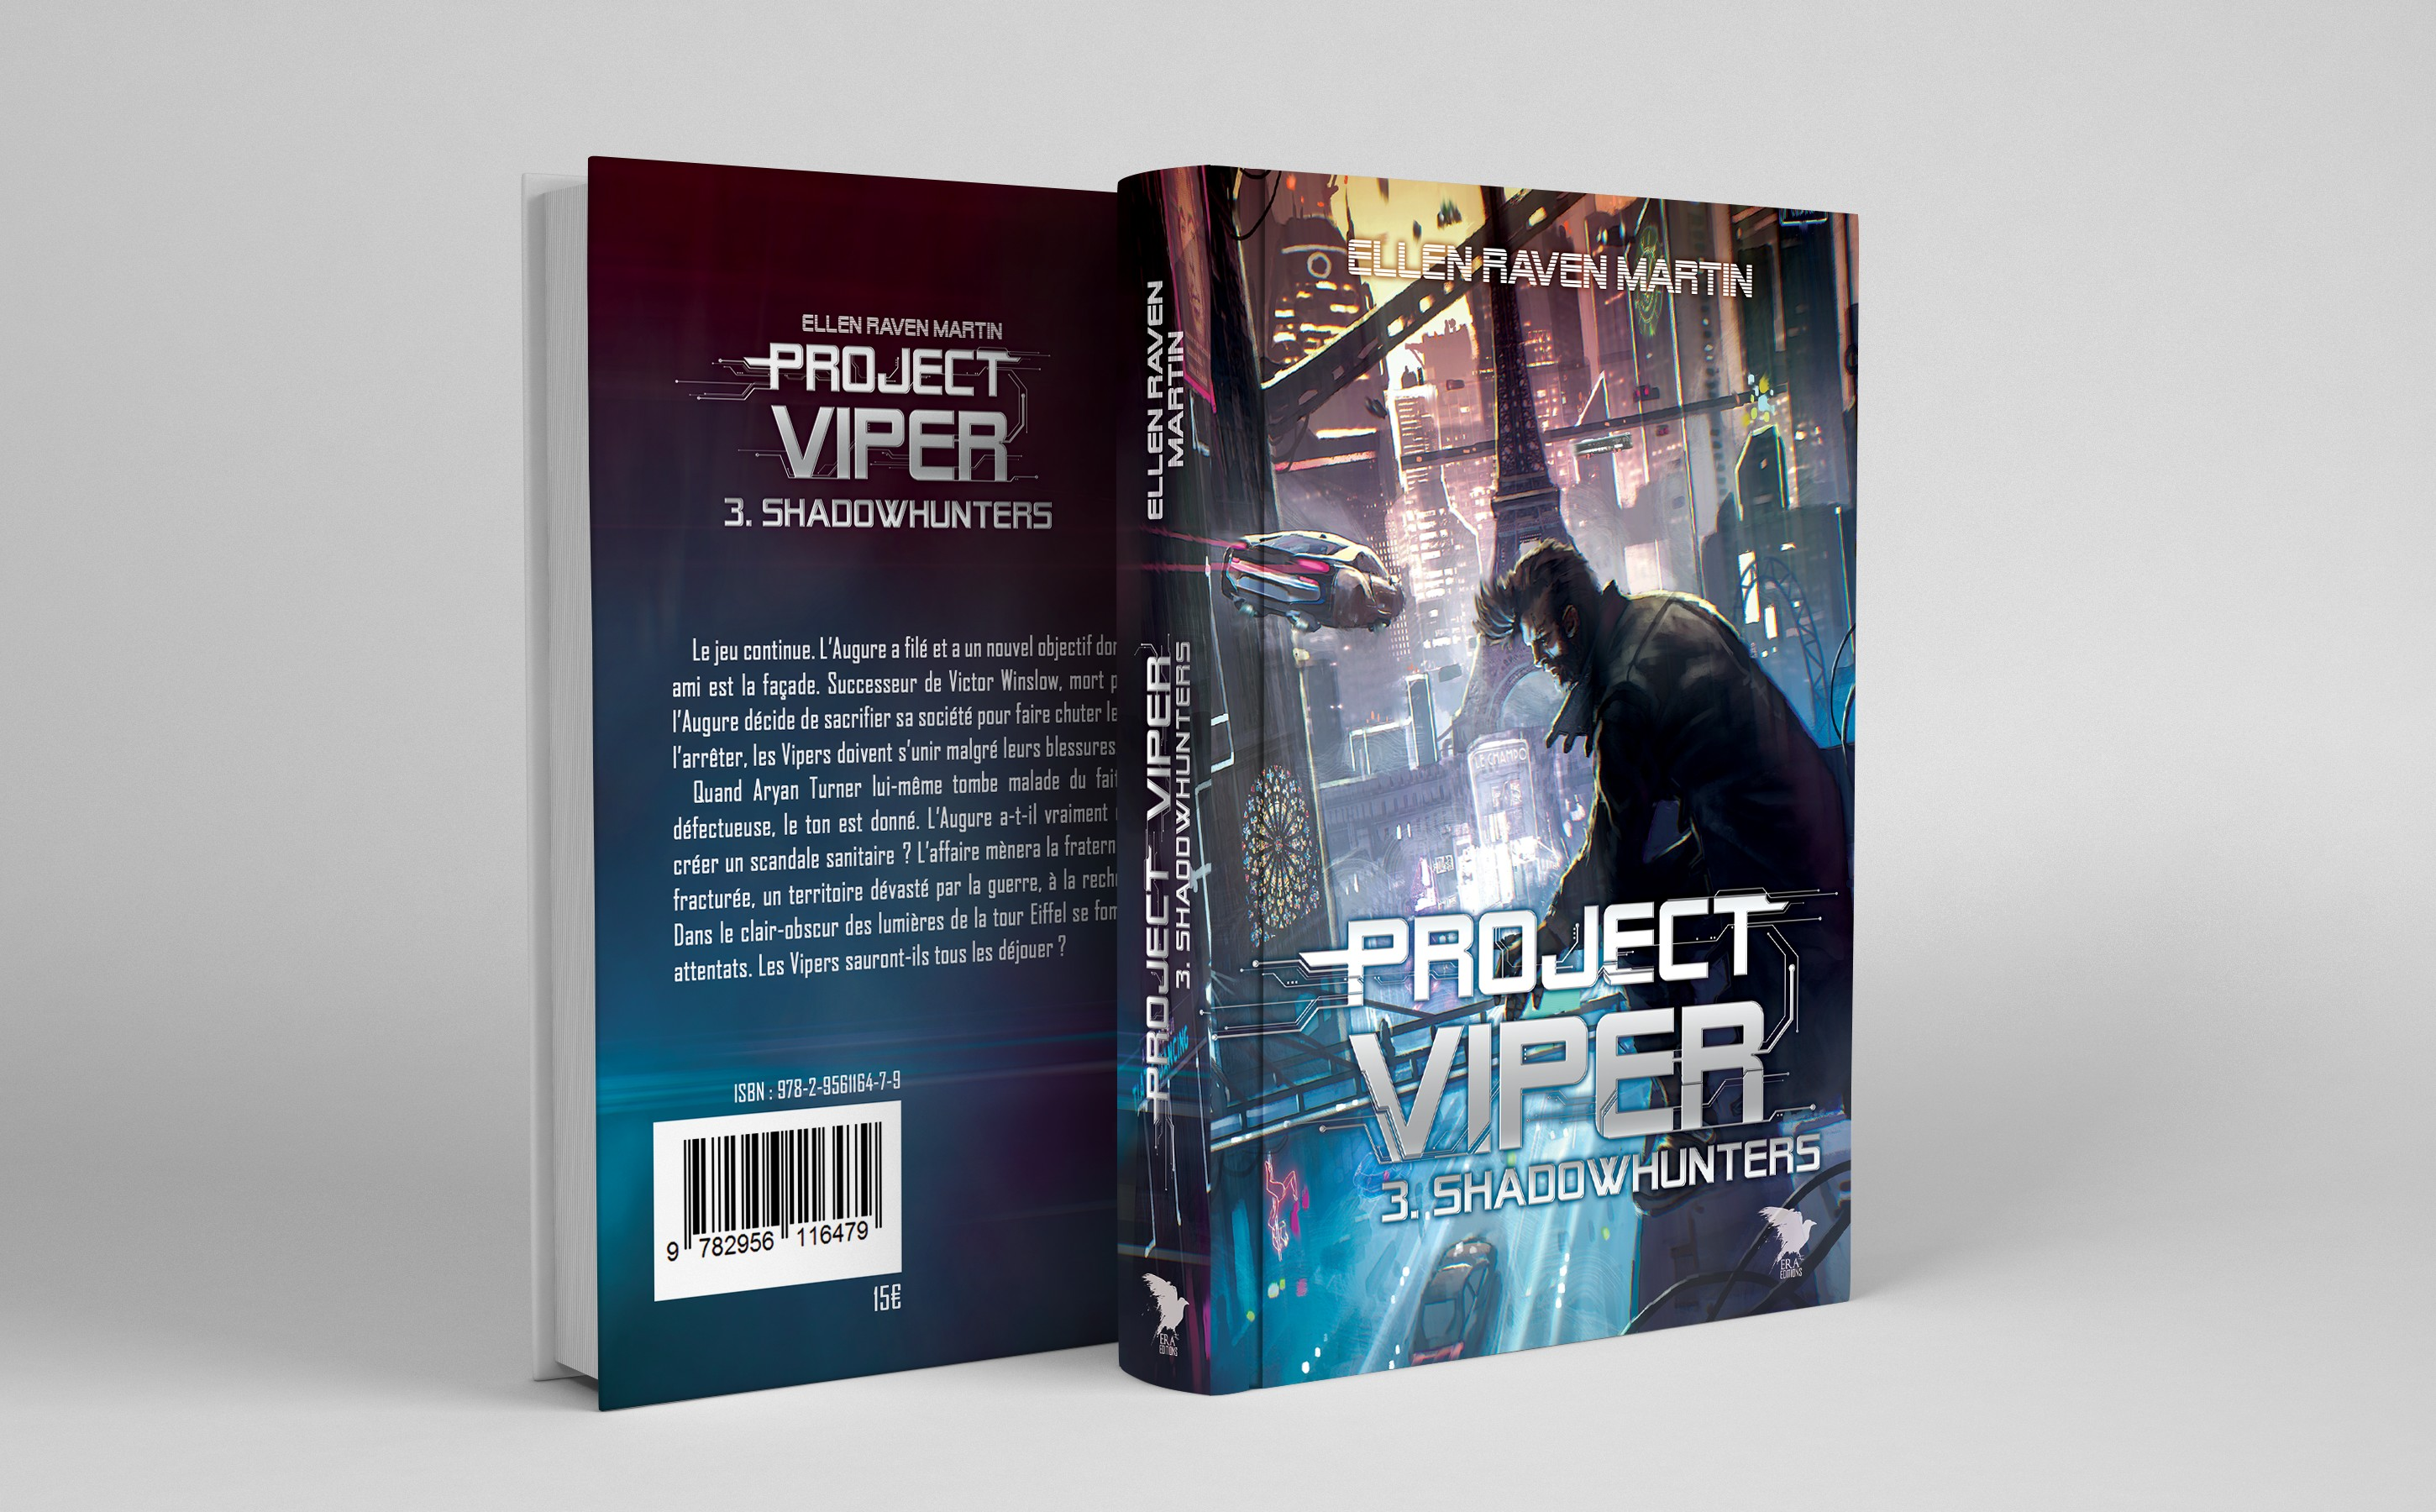 Project Viper - Shadowhunters